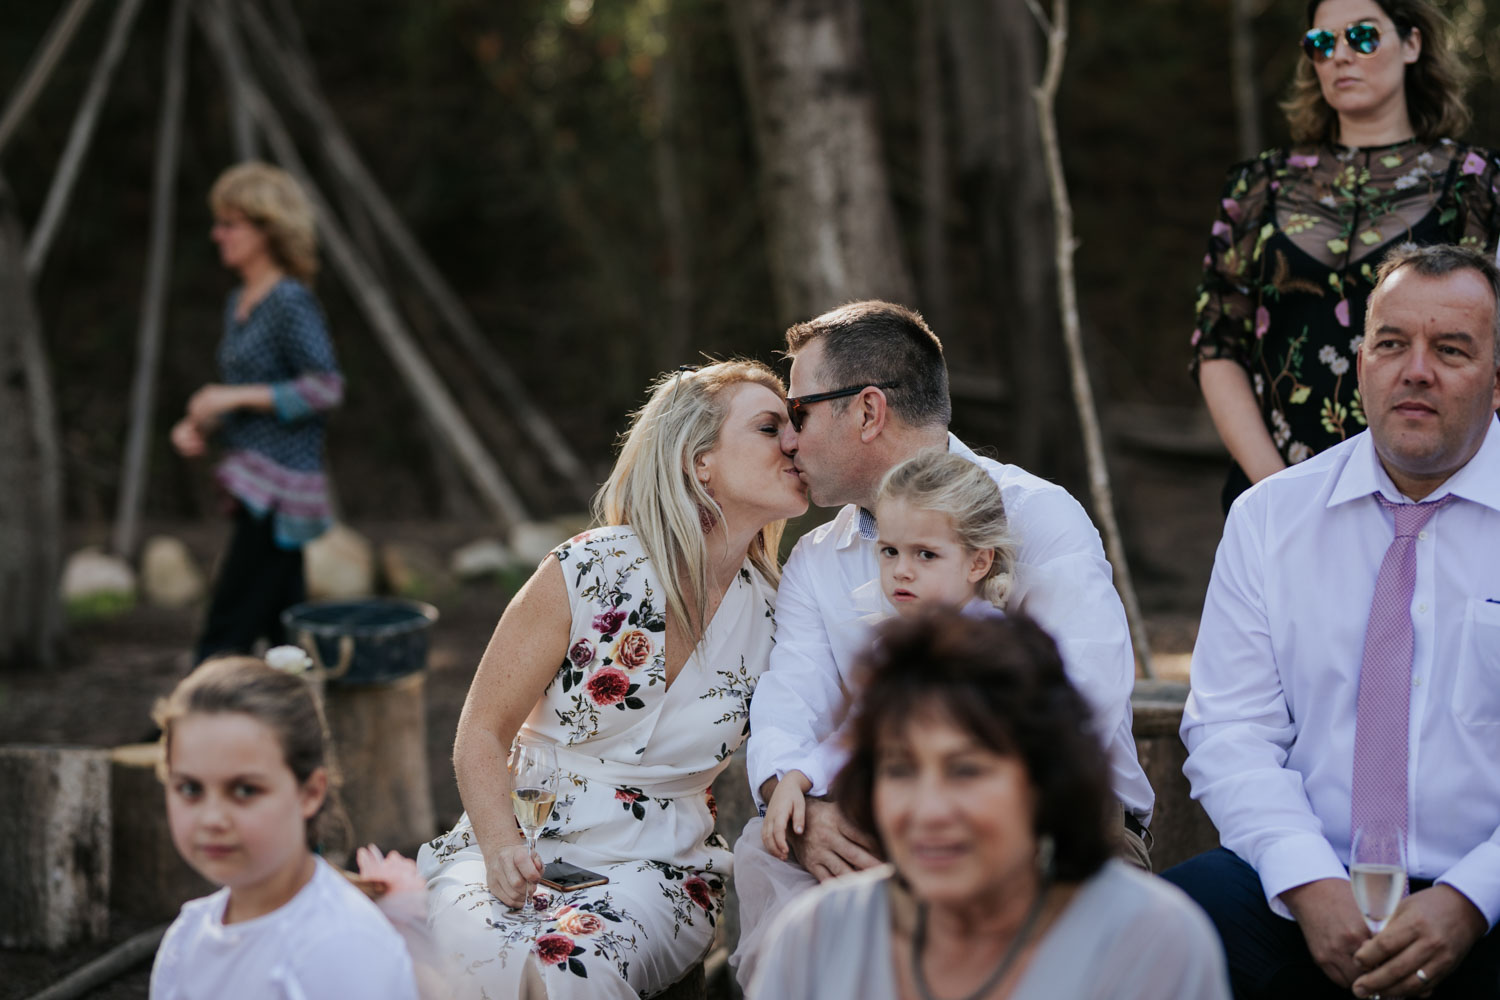 Candid and romantic moment of wedding guests sharing a kiss during a wedding ceremony